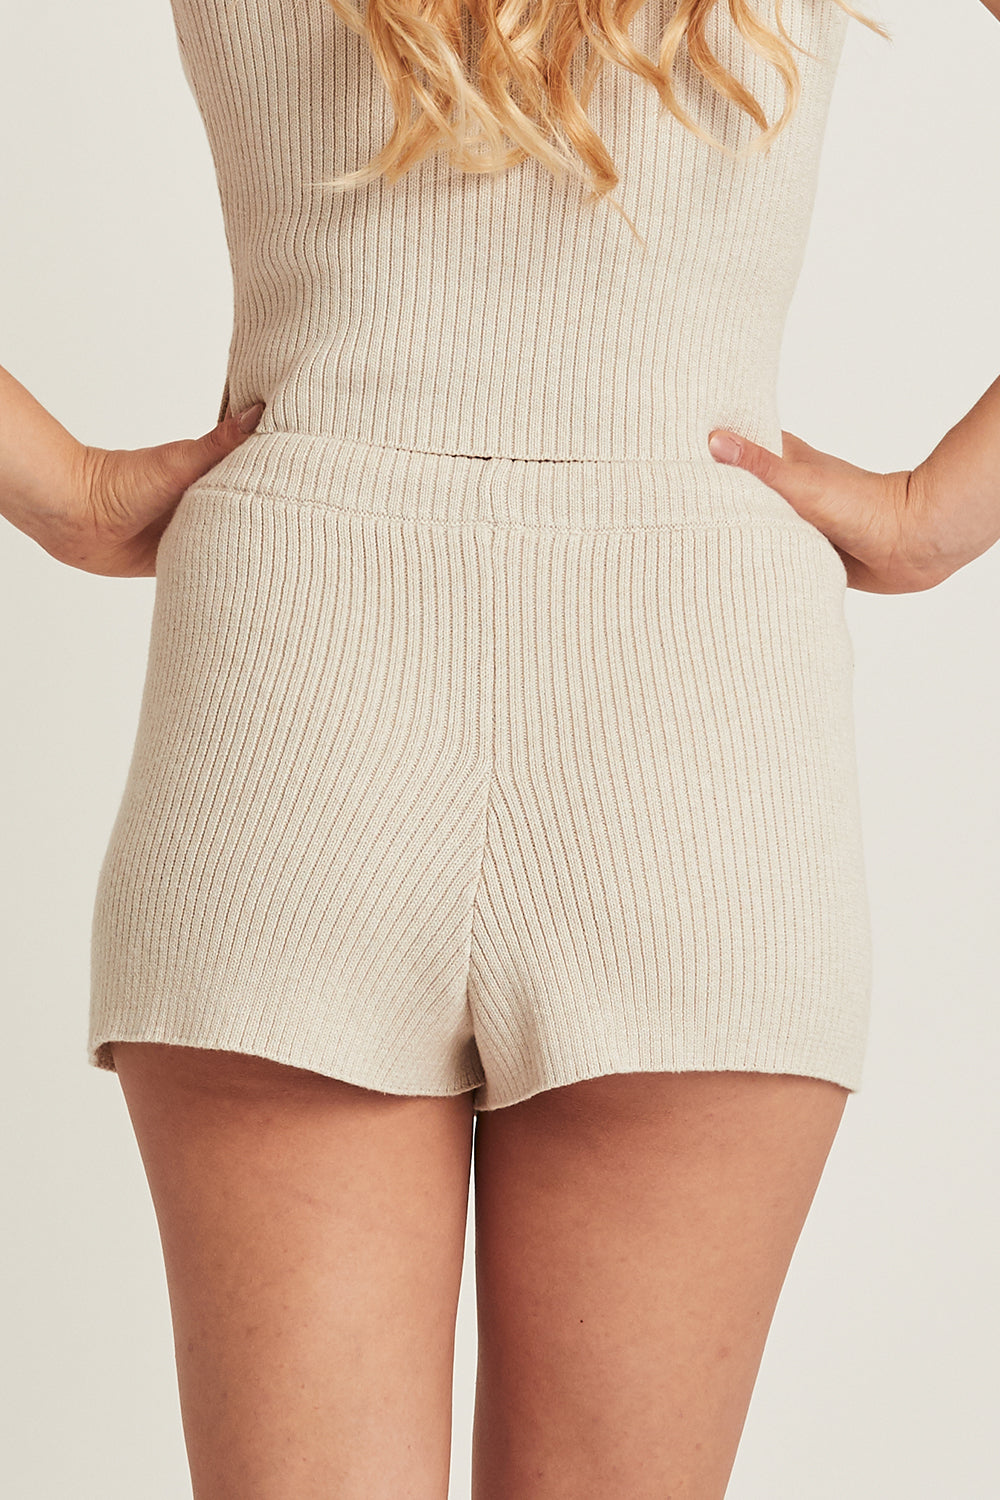 Taylor Knitted Shorts in Driftwood